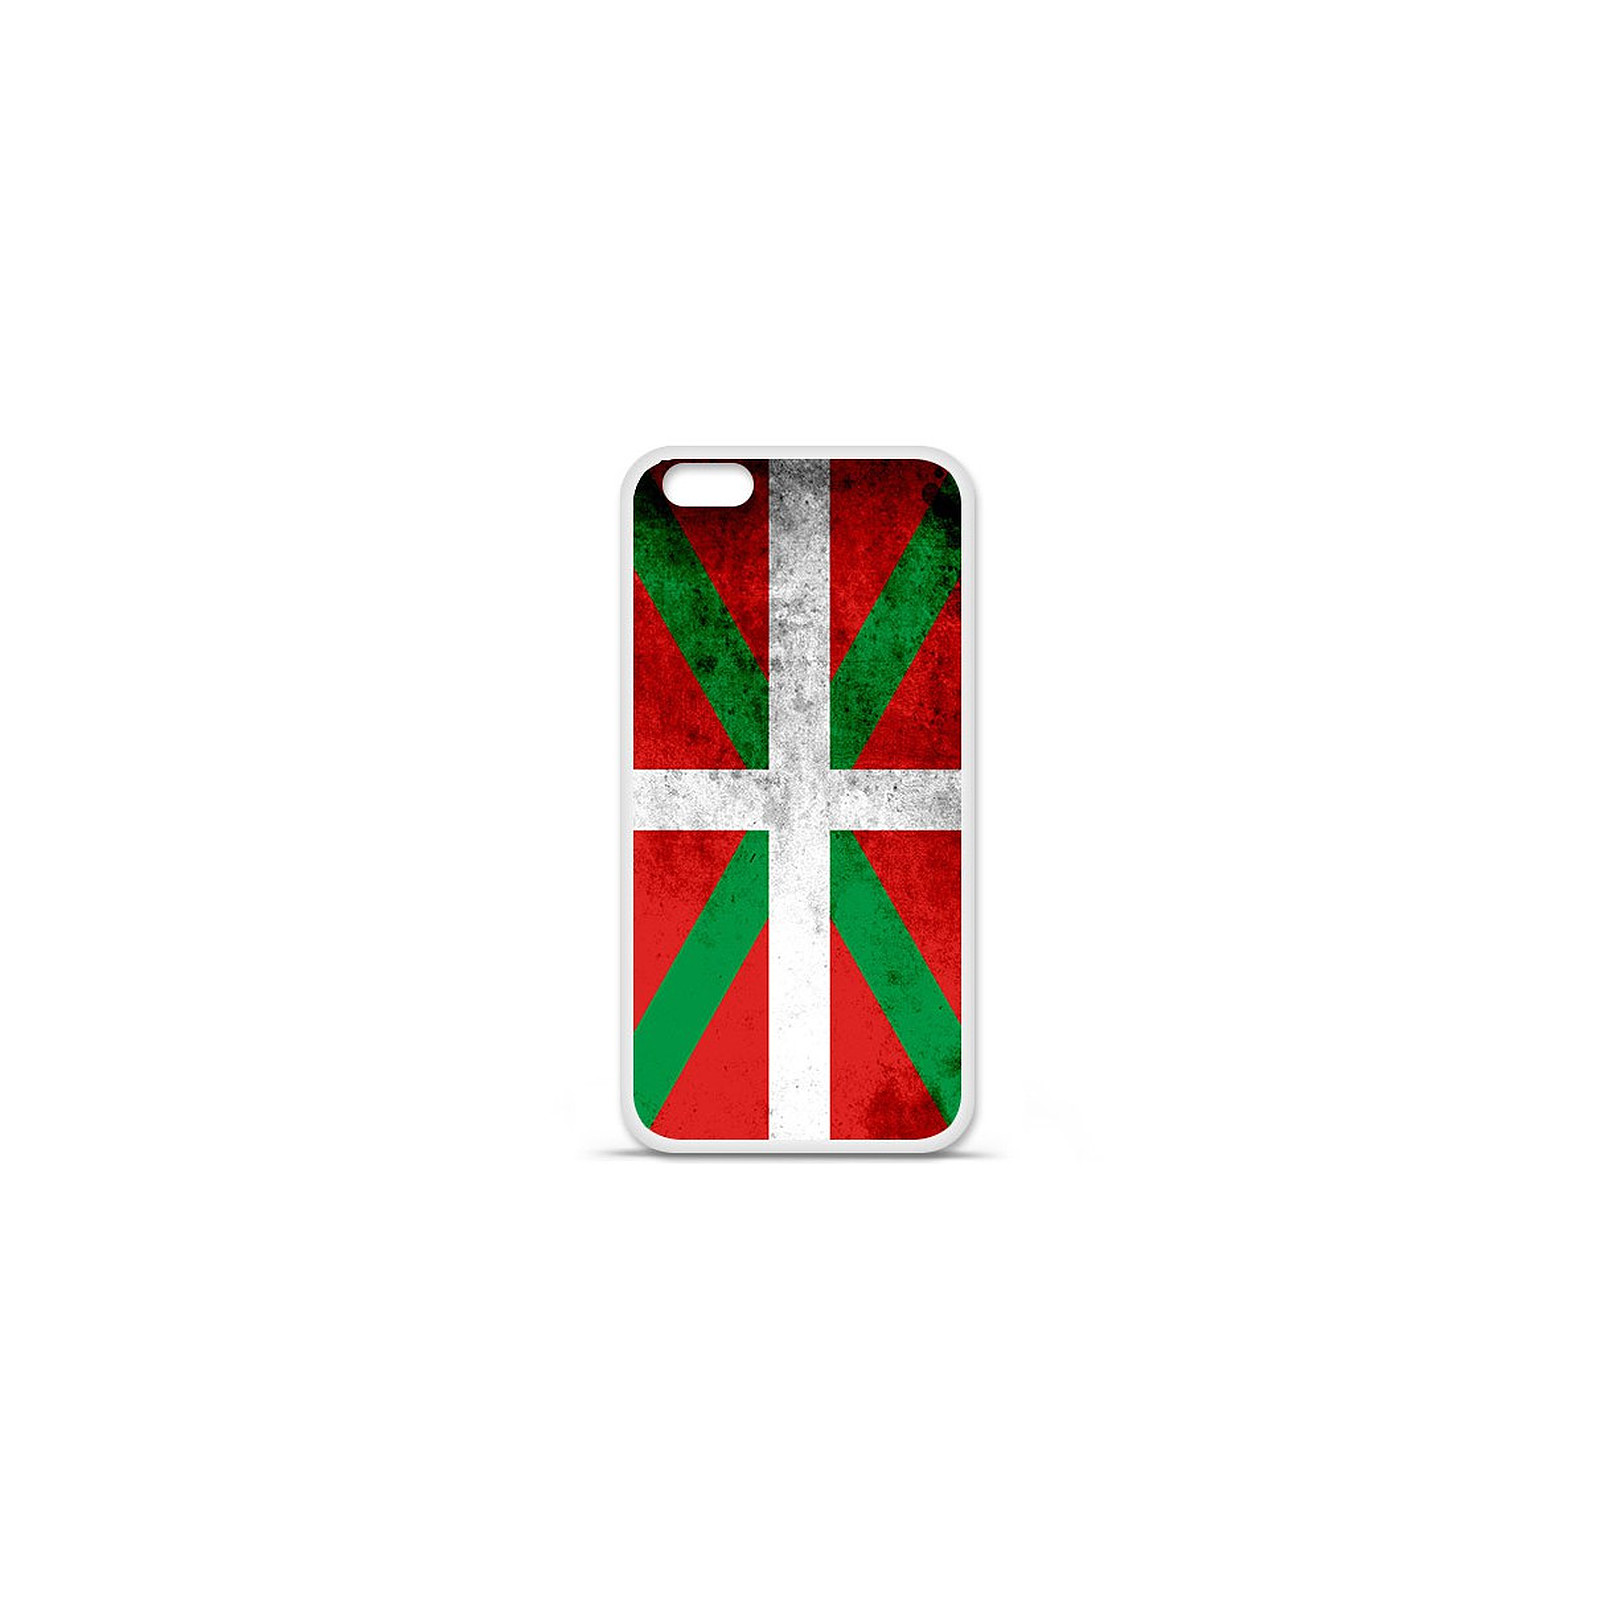 1001 Coques Coque silicone gel Apple IPhone 7 Plus motif Drapeau Basque